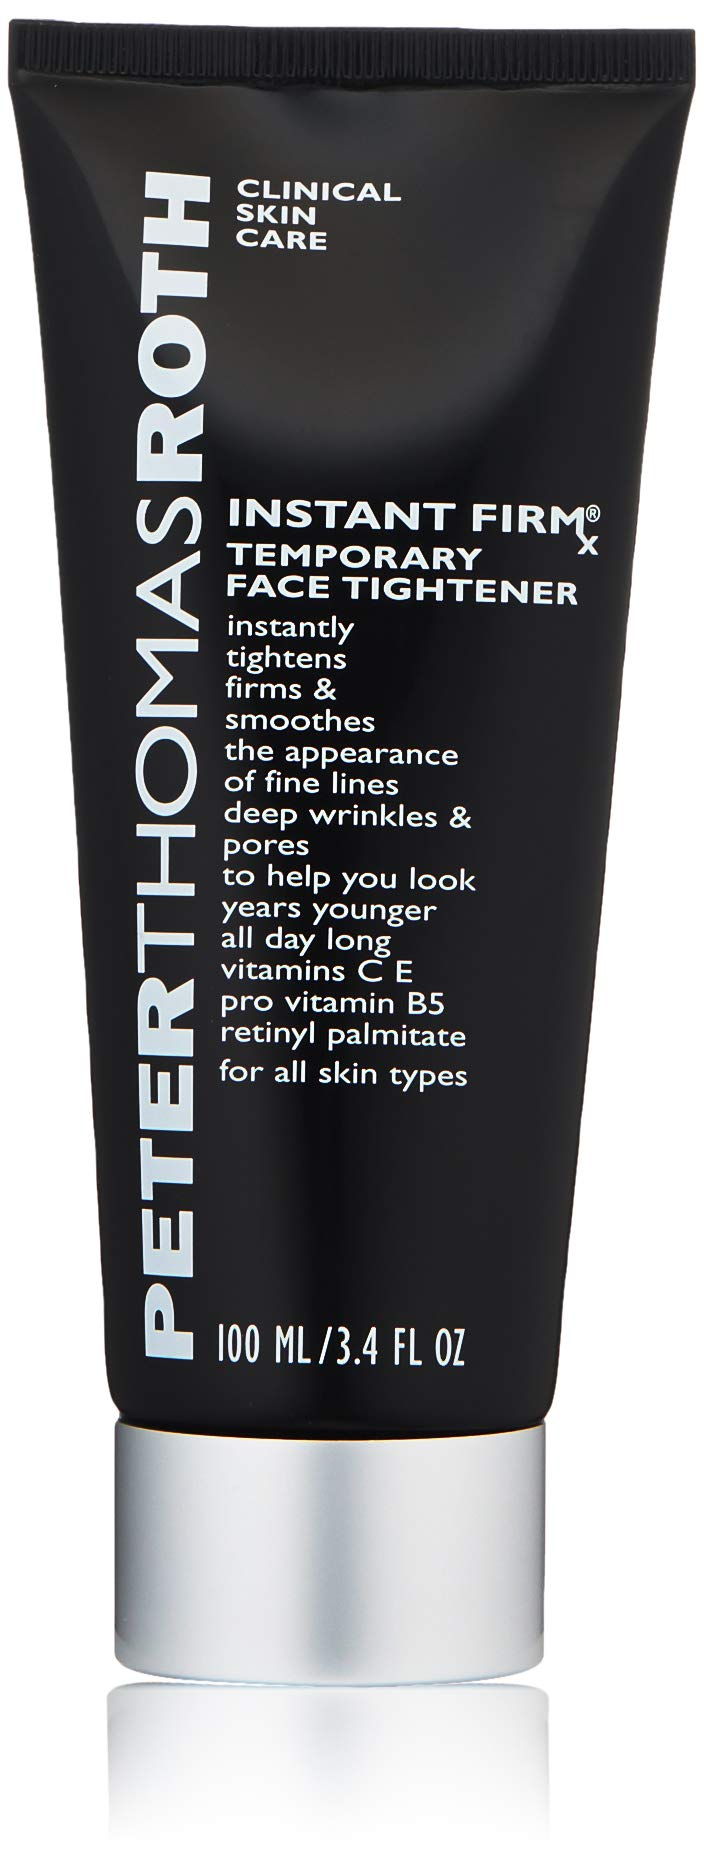 Peter Thomas Roth Instant Firmx Temporary Face Tightener, 3.4 Fl Oz by Peter Thomas Roth